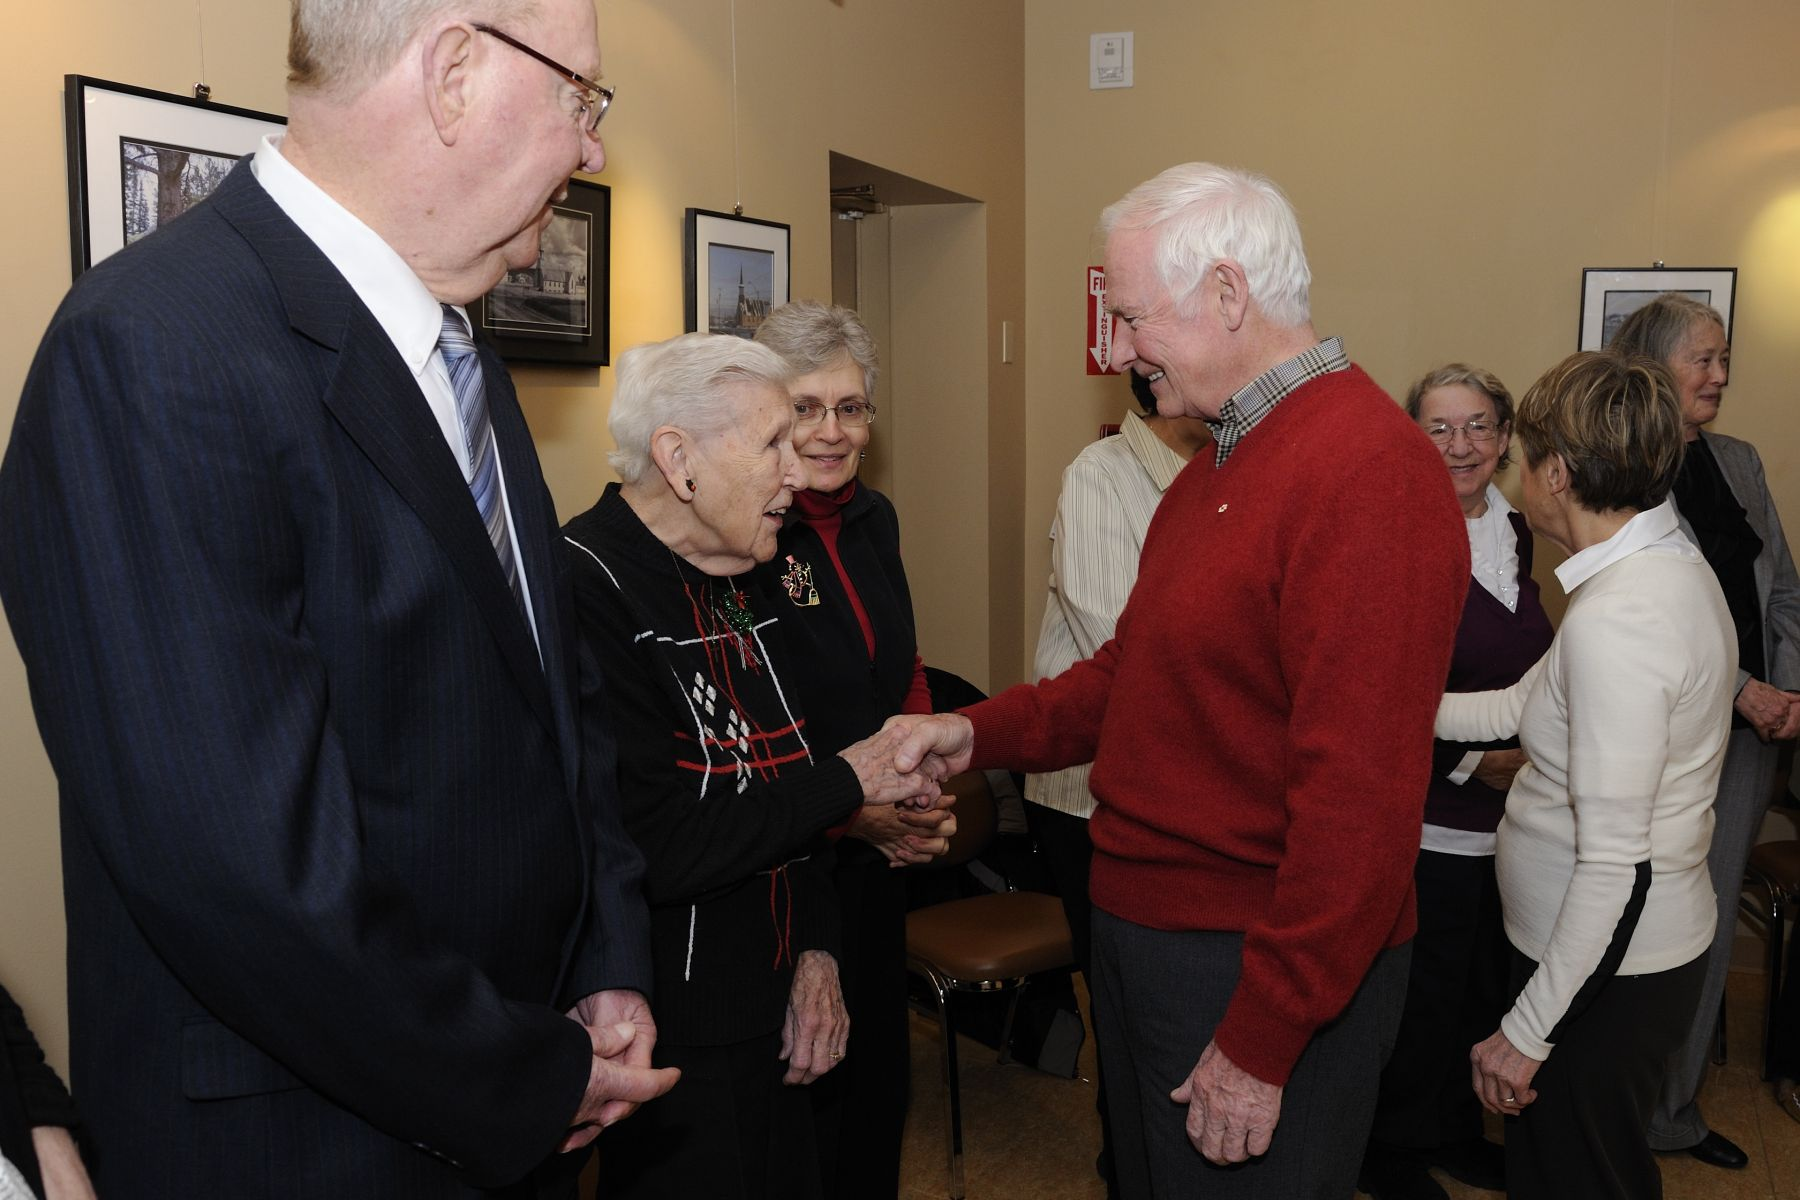 Next on the itinerary, Their Excellencies met with community Elders before taking a tour of the Northern Life Museum, which holds 10 000 artifacts representing the people and history of the North. These artifacts were mostly collected by the Oblate Fathers and Grey Nuns during their missionary work in the North.